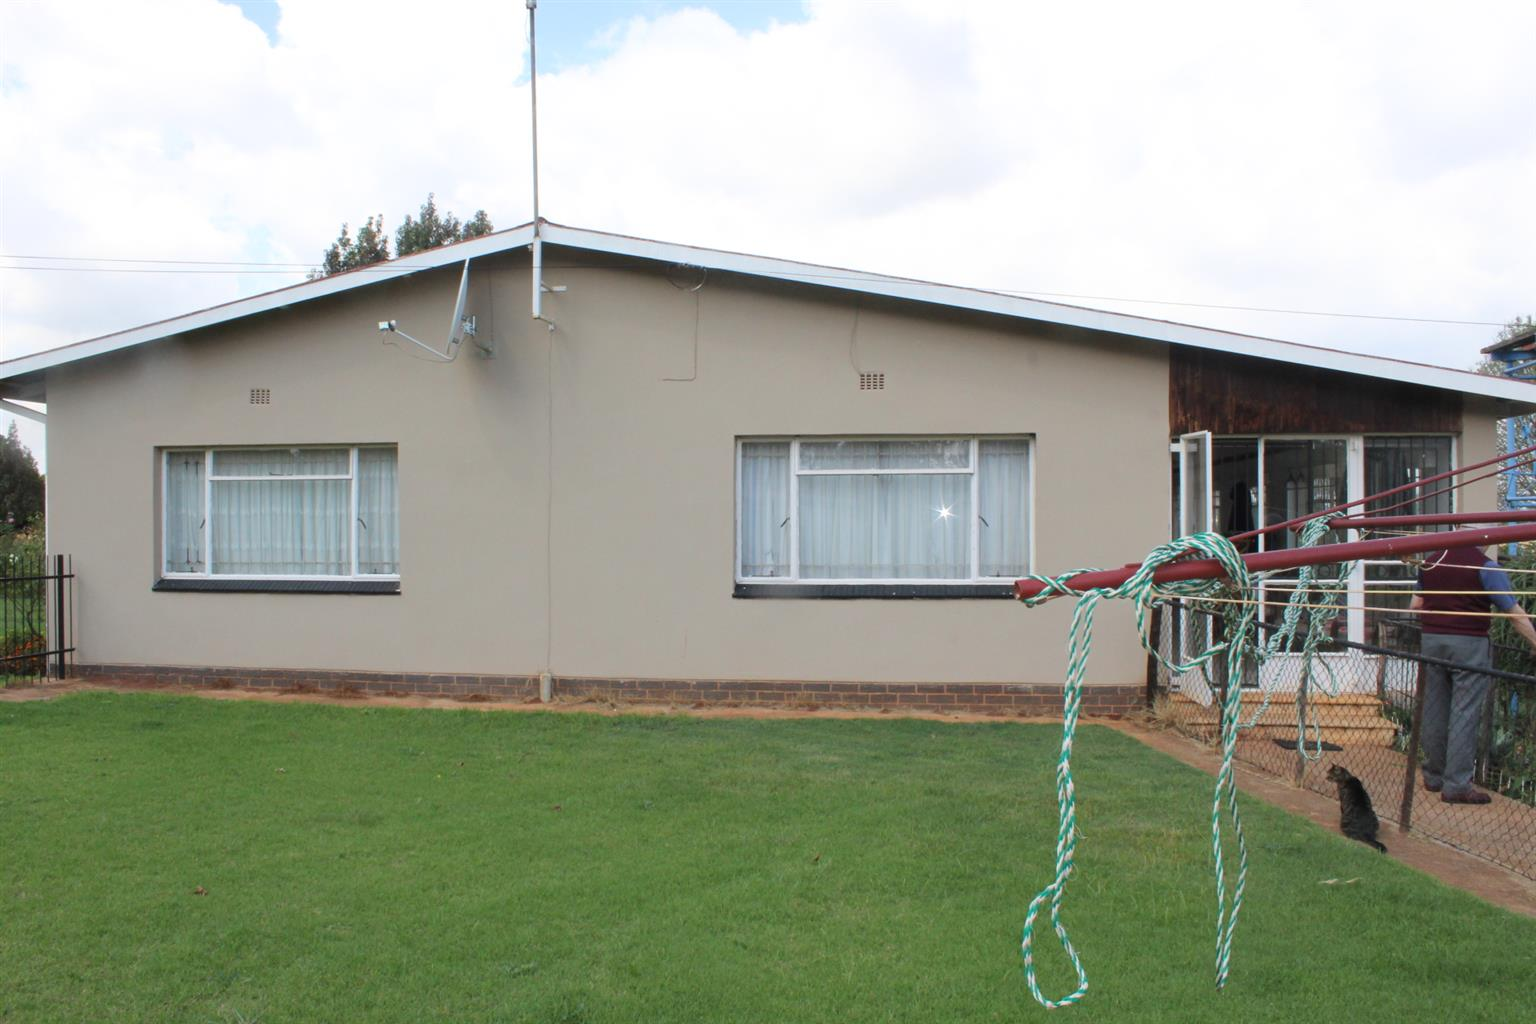 KEMPTON PARK13 MIN. FROM BREDELL-8.5 MINI FARM-2 VERTY GOOD HOUSES-WORKSHOP-GOOD WATER ETC!!